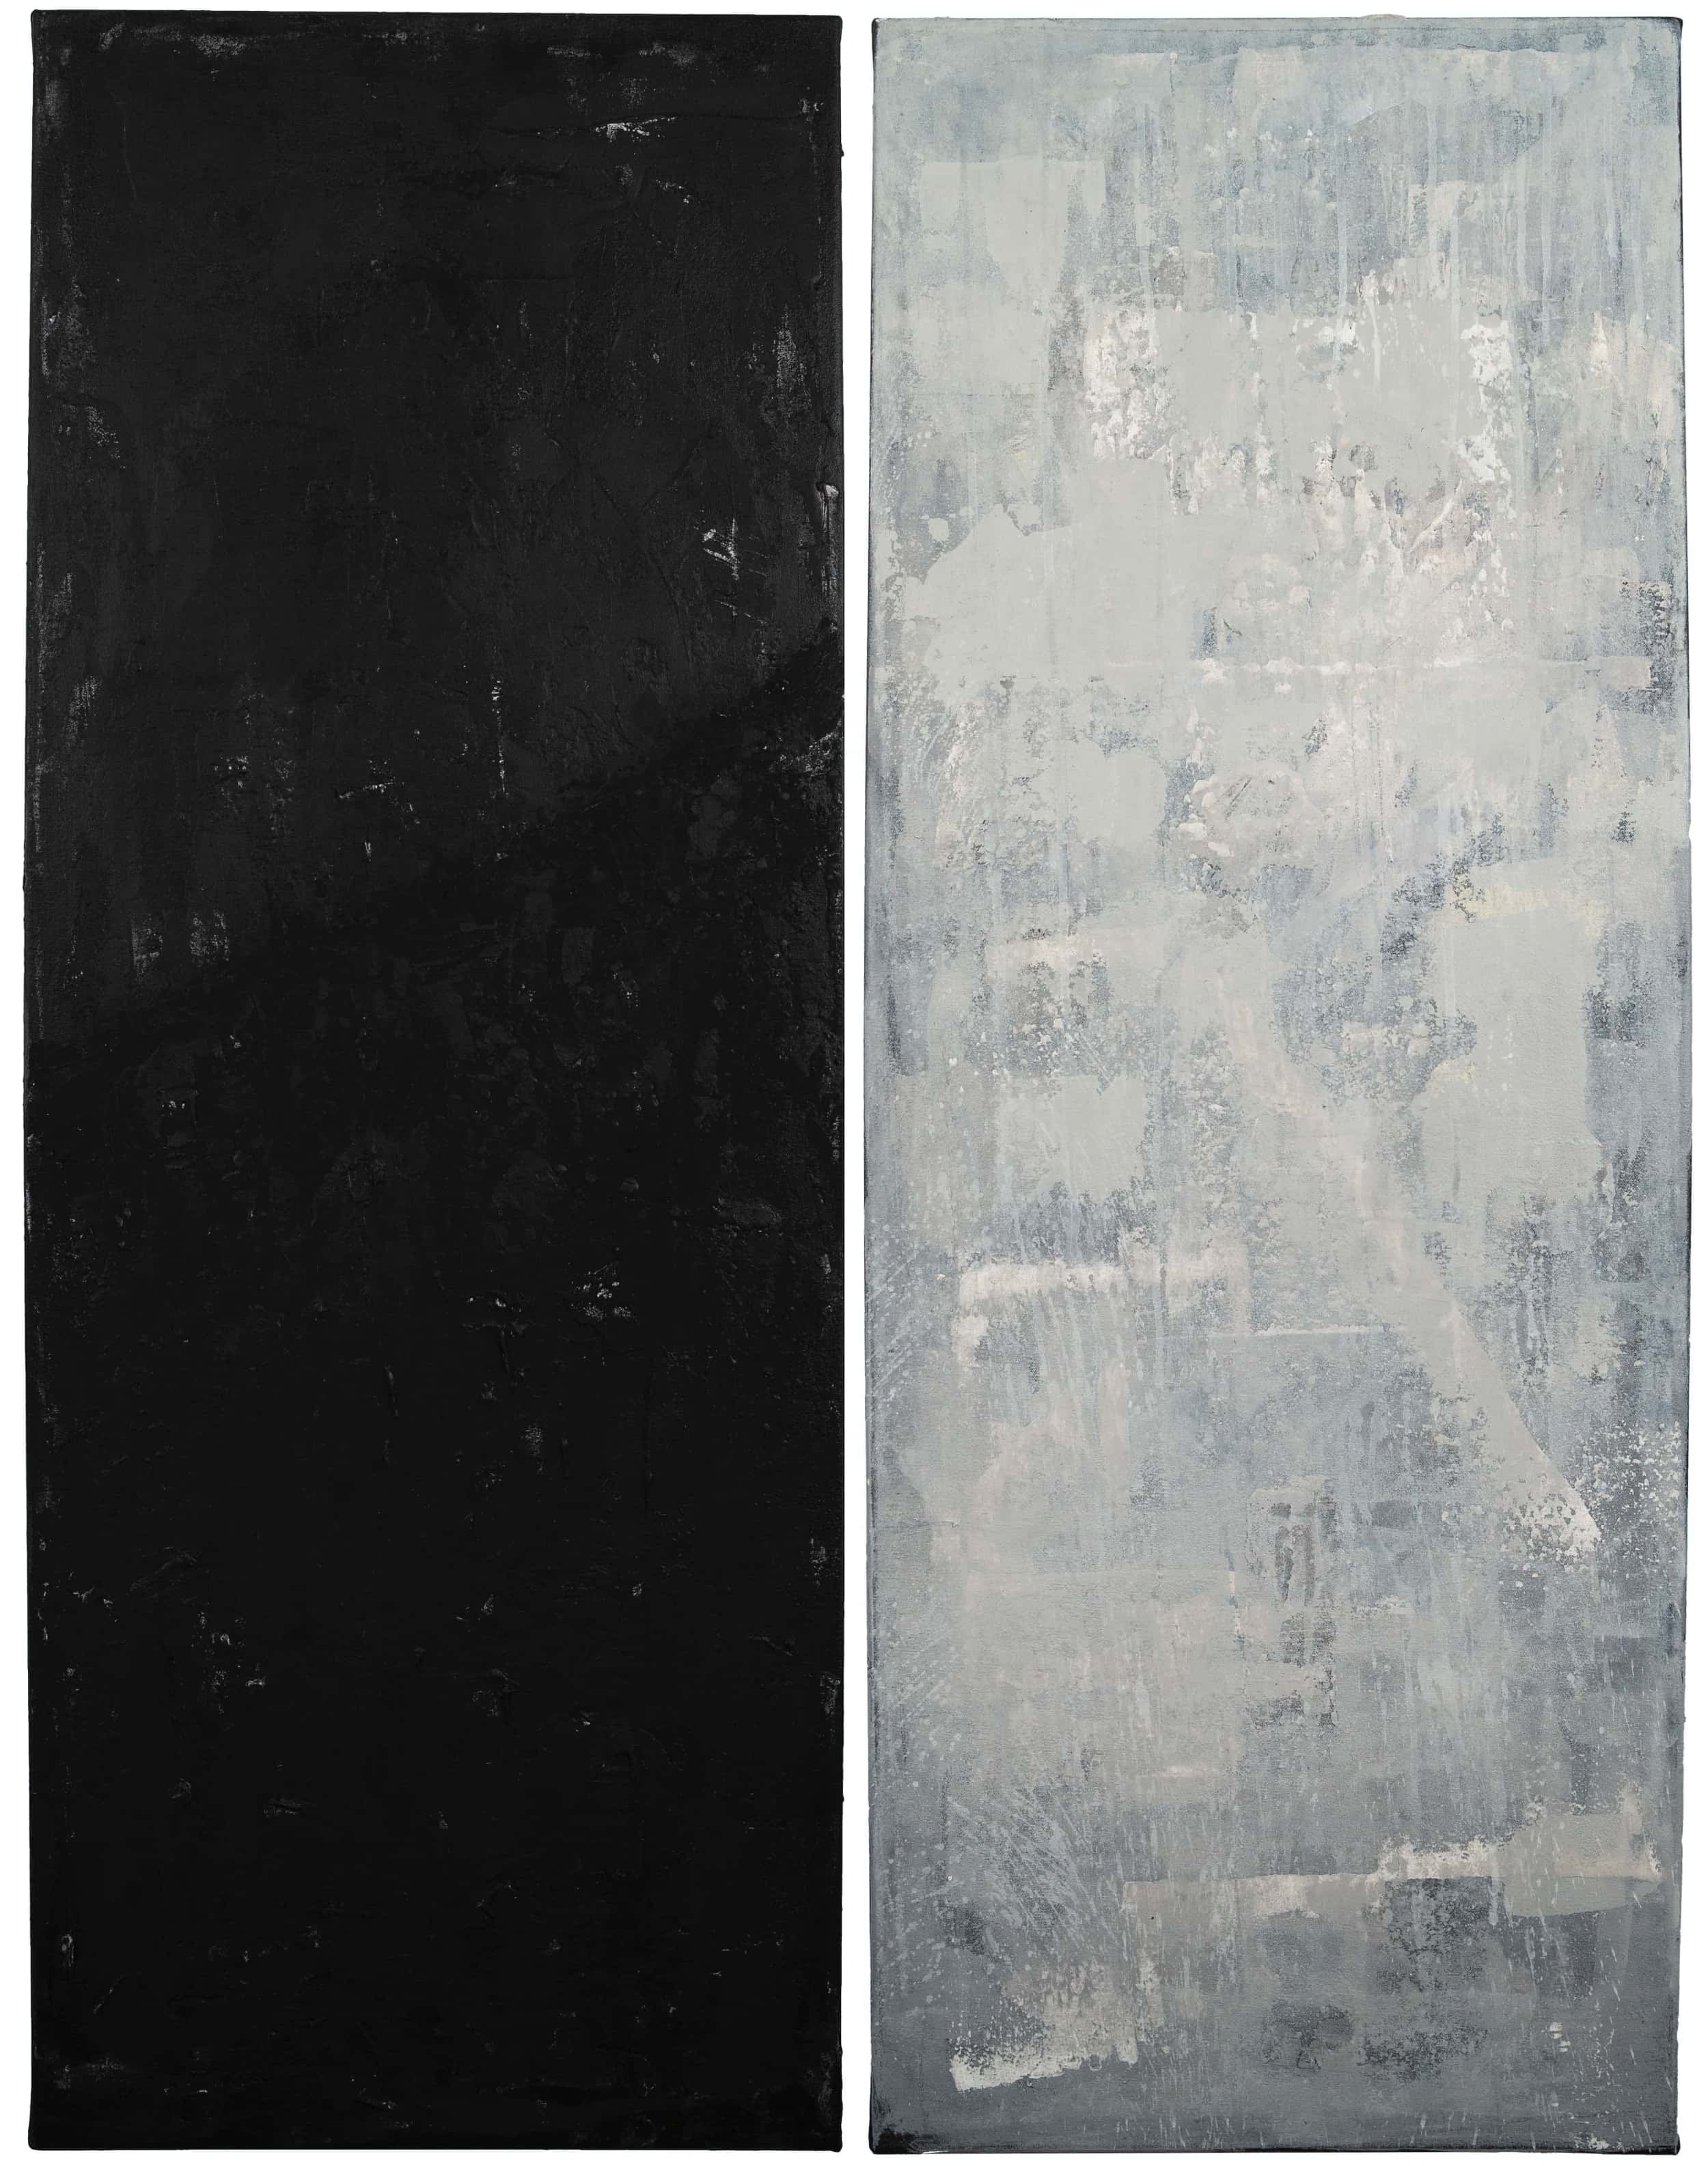 Modulo , 2019 Acrylic, charcoal, stucco, spackling on canvas 2 panels each 48 × 18 in (121.9 × 45.7 cm)